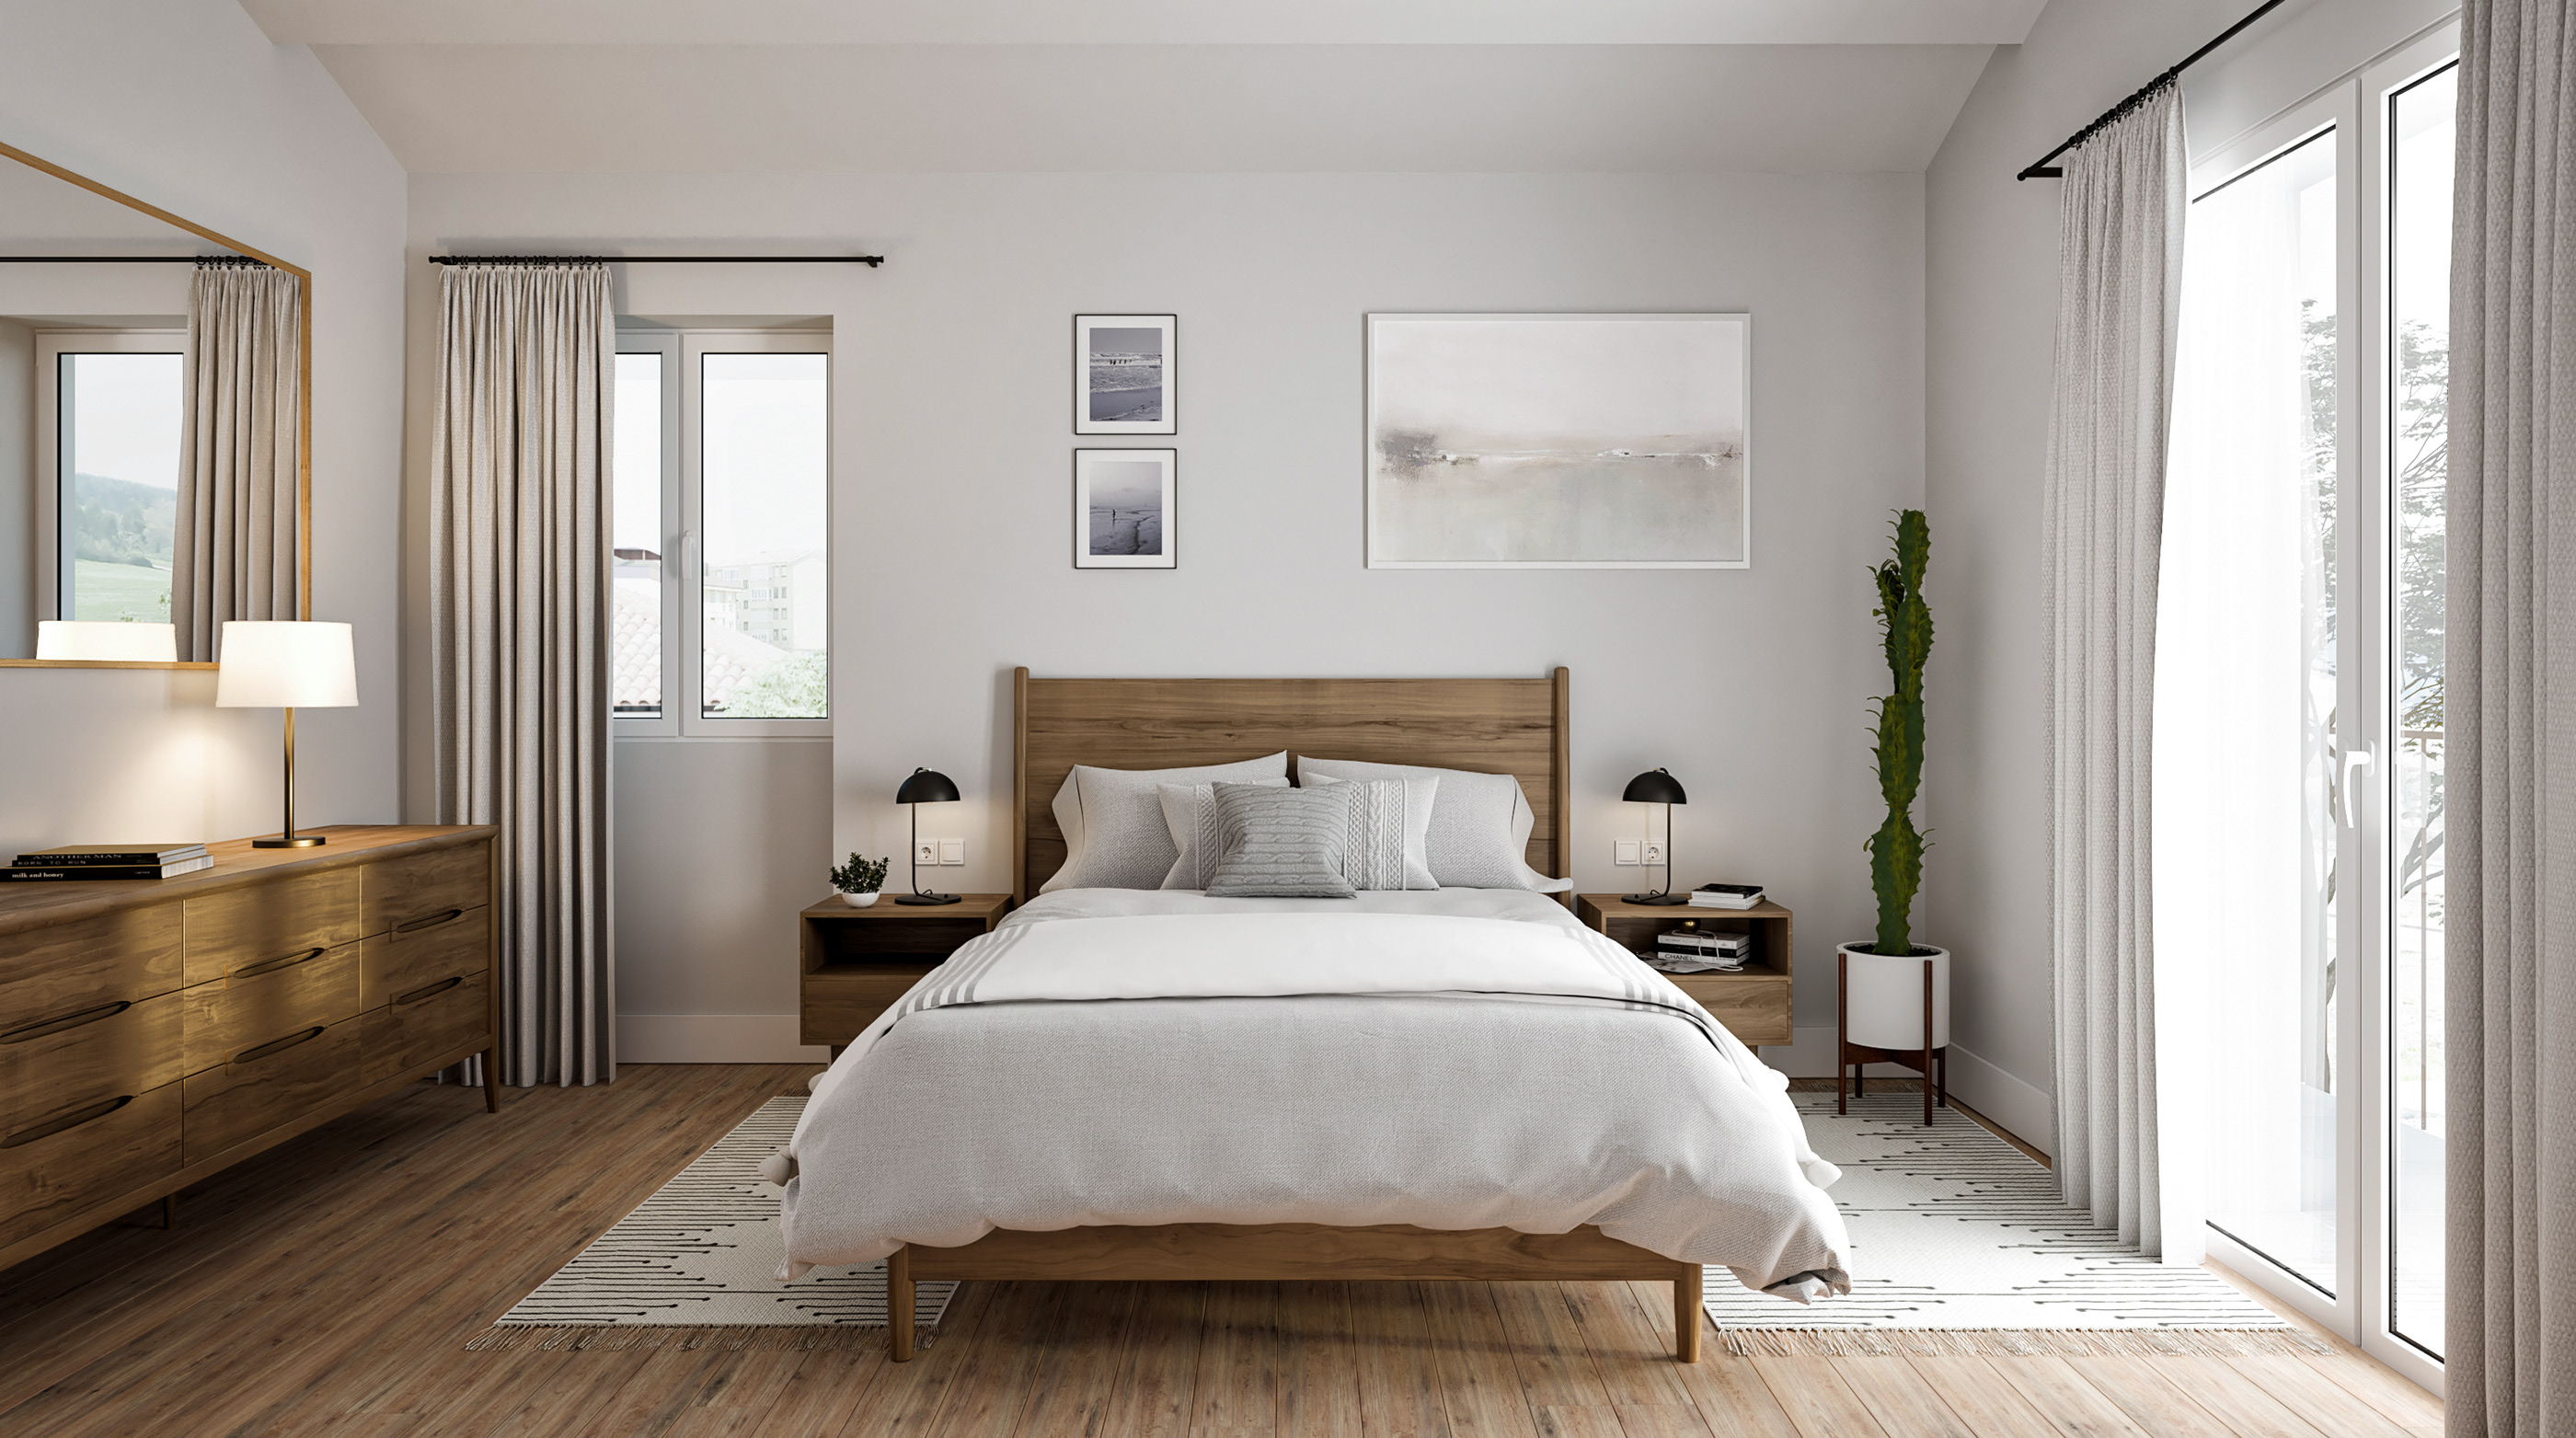 architectural visualization of bedroom